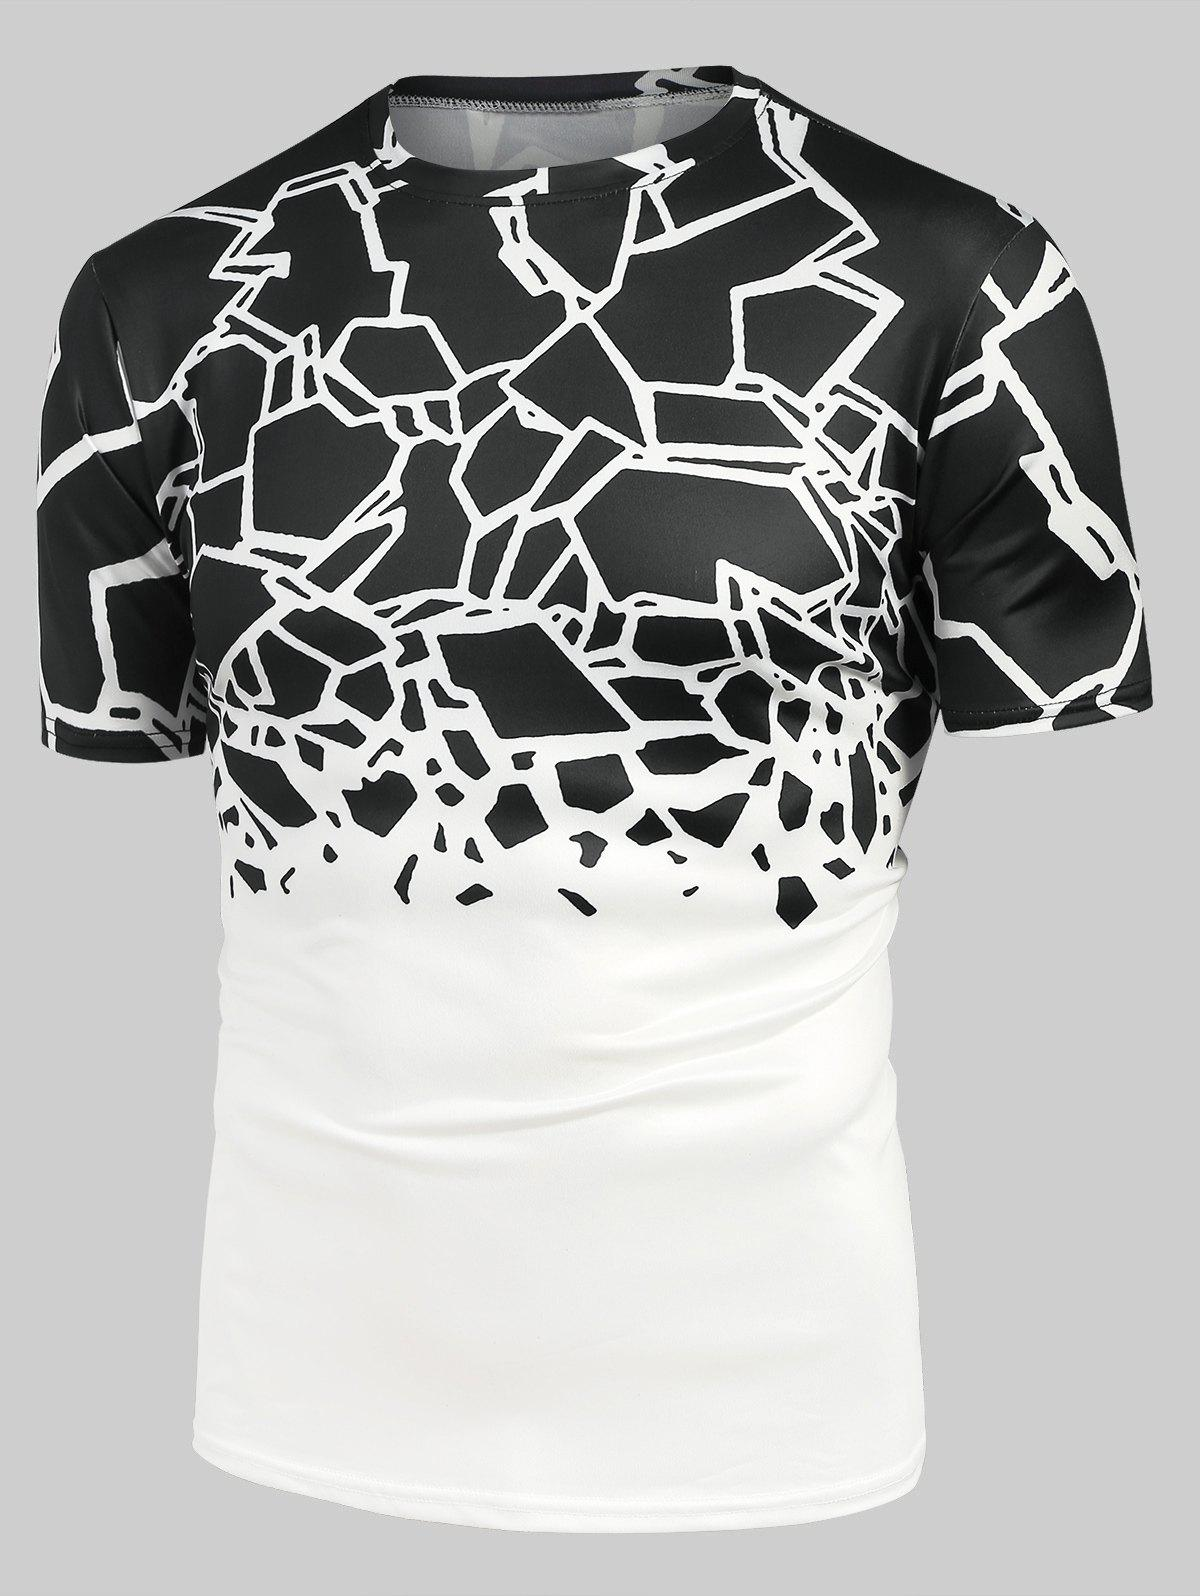 New Abstract Geometric Print Short Sleeve Tee